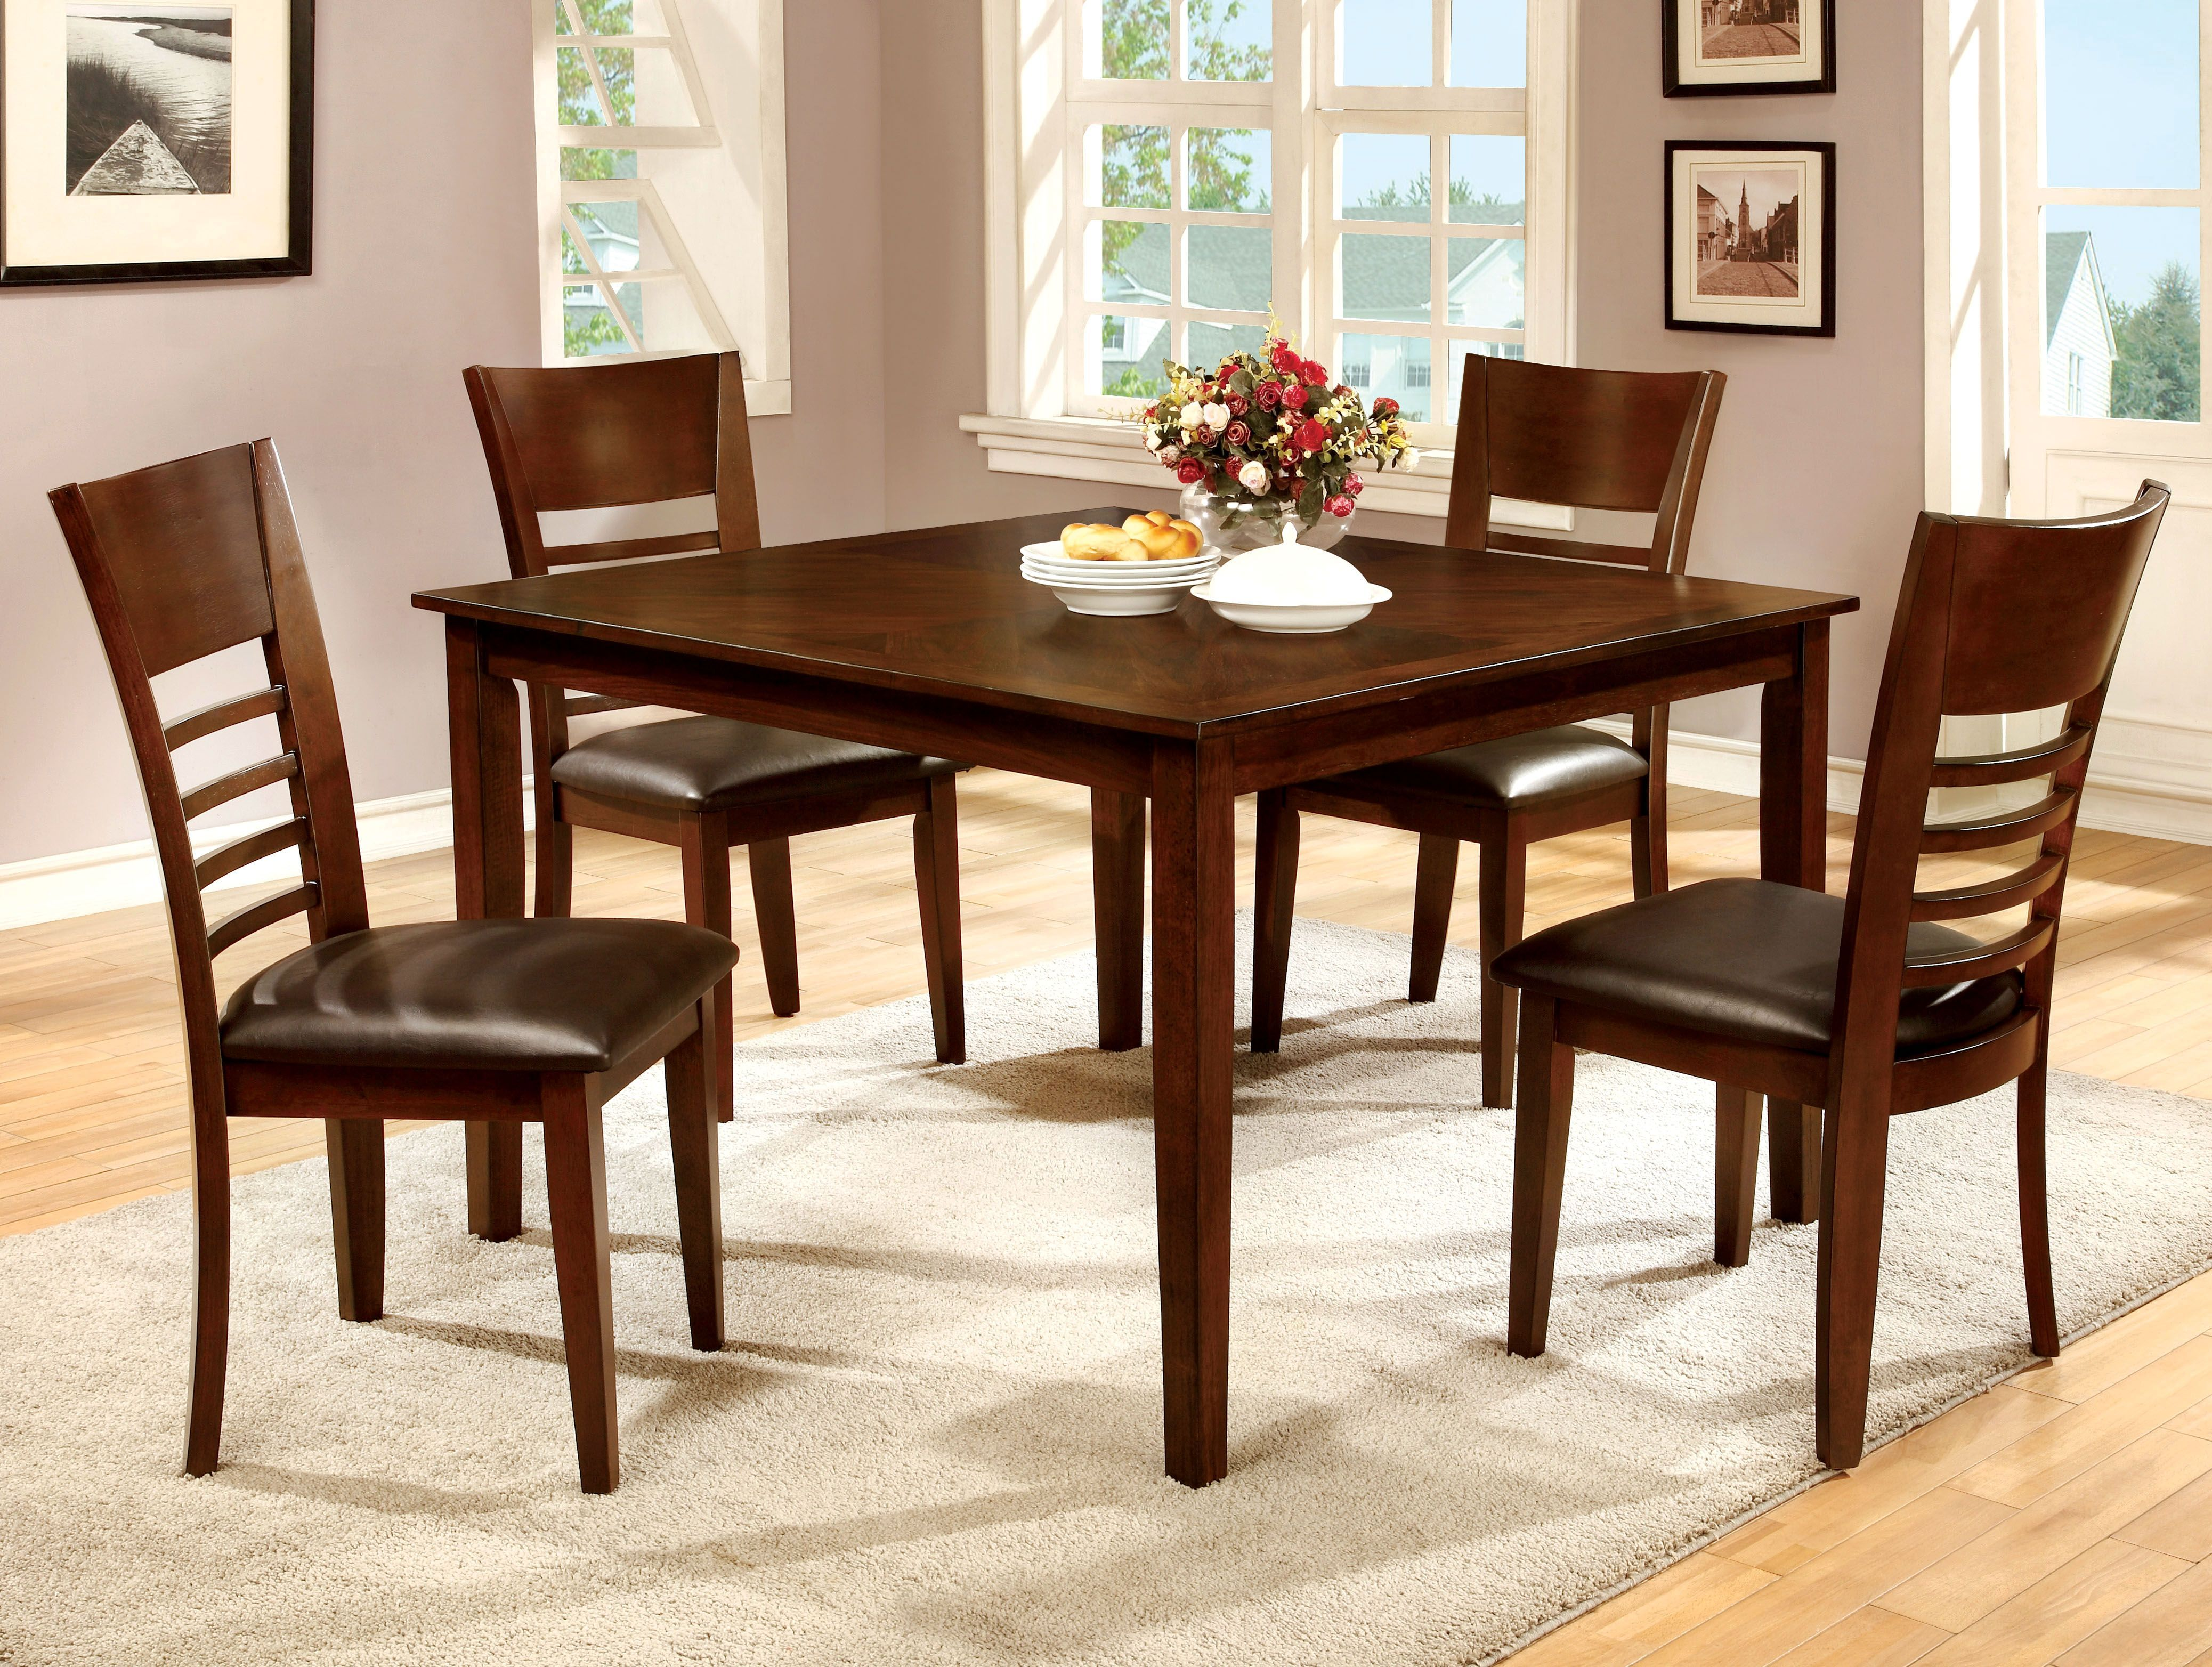 Furniture Of America Brown Cherry Nadia 5 Piece Dining Set